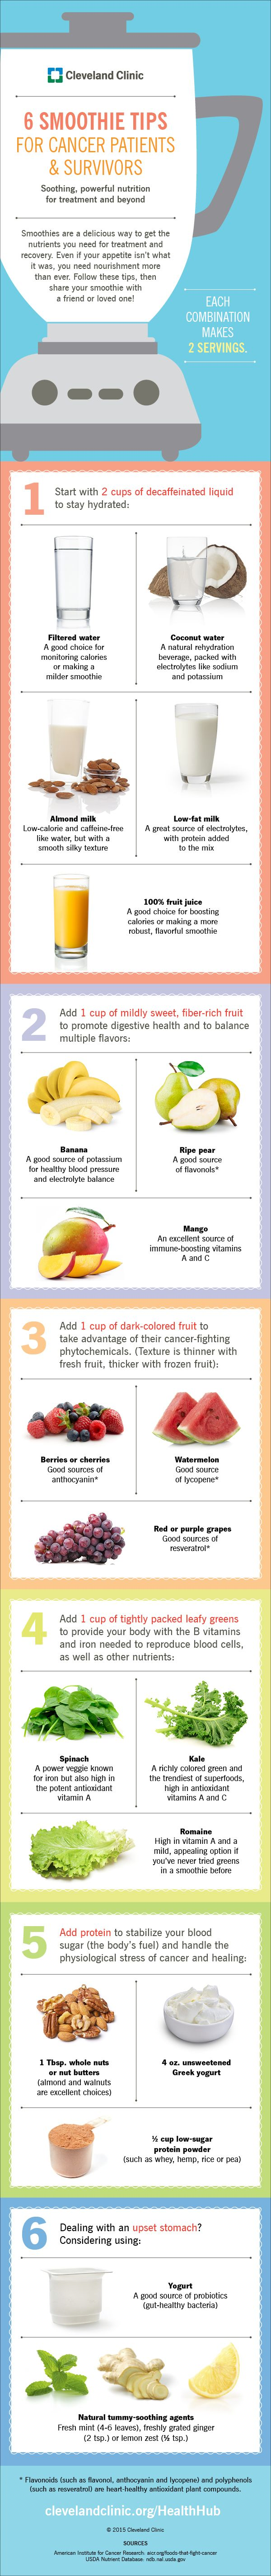 6 Smoothie Tips for Cancer Patients and Survivors #infographic